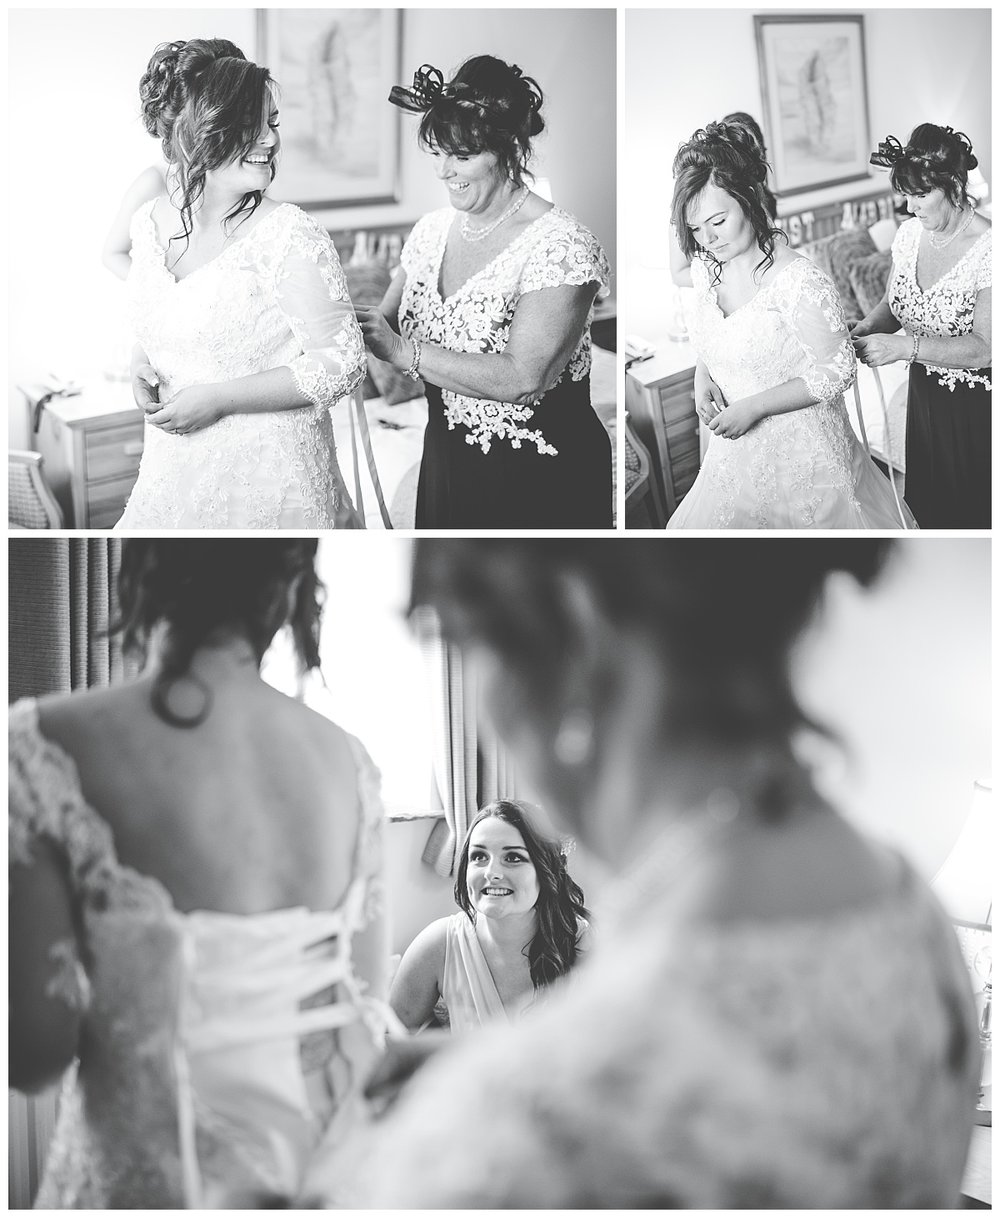 Collage of the bride getting ready- Black and white wedding photography